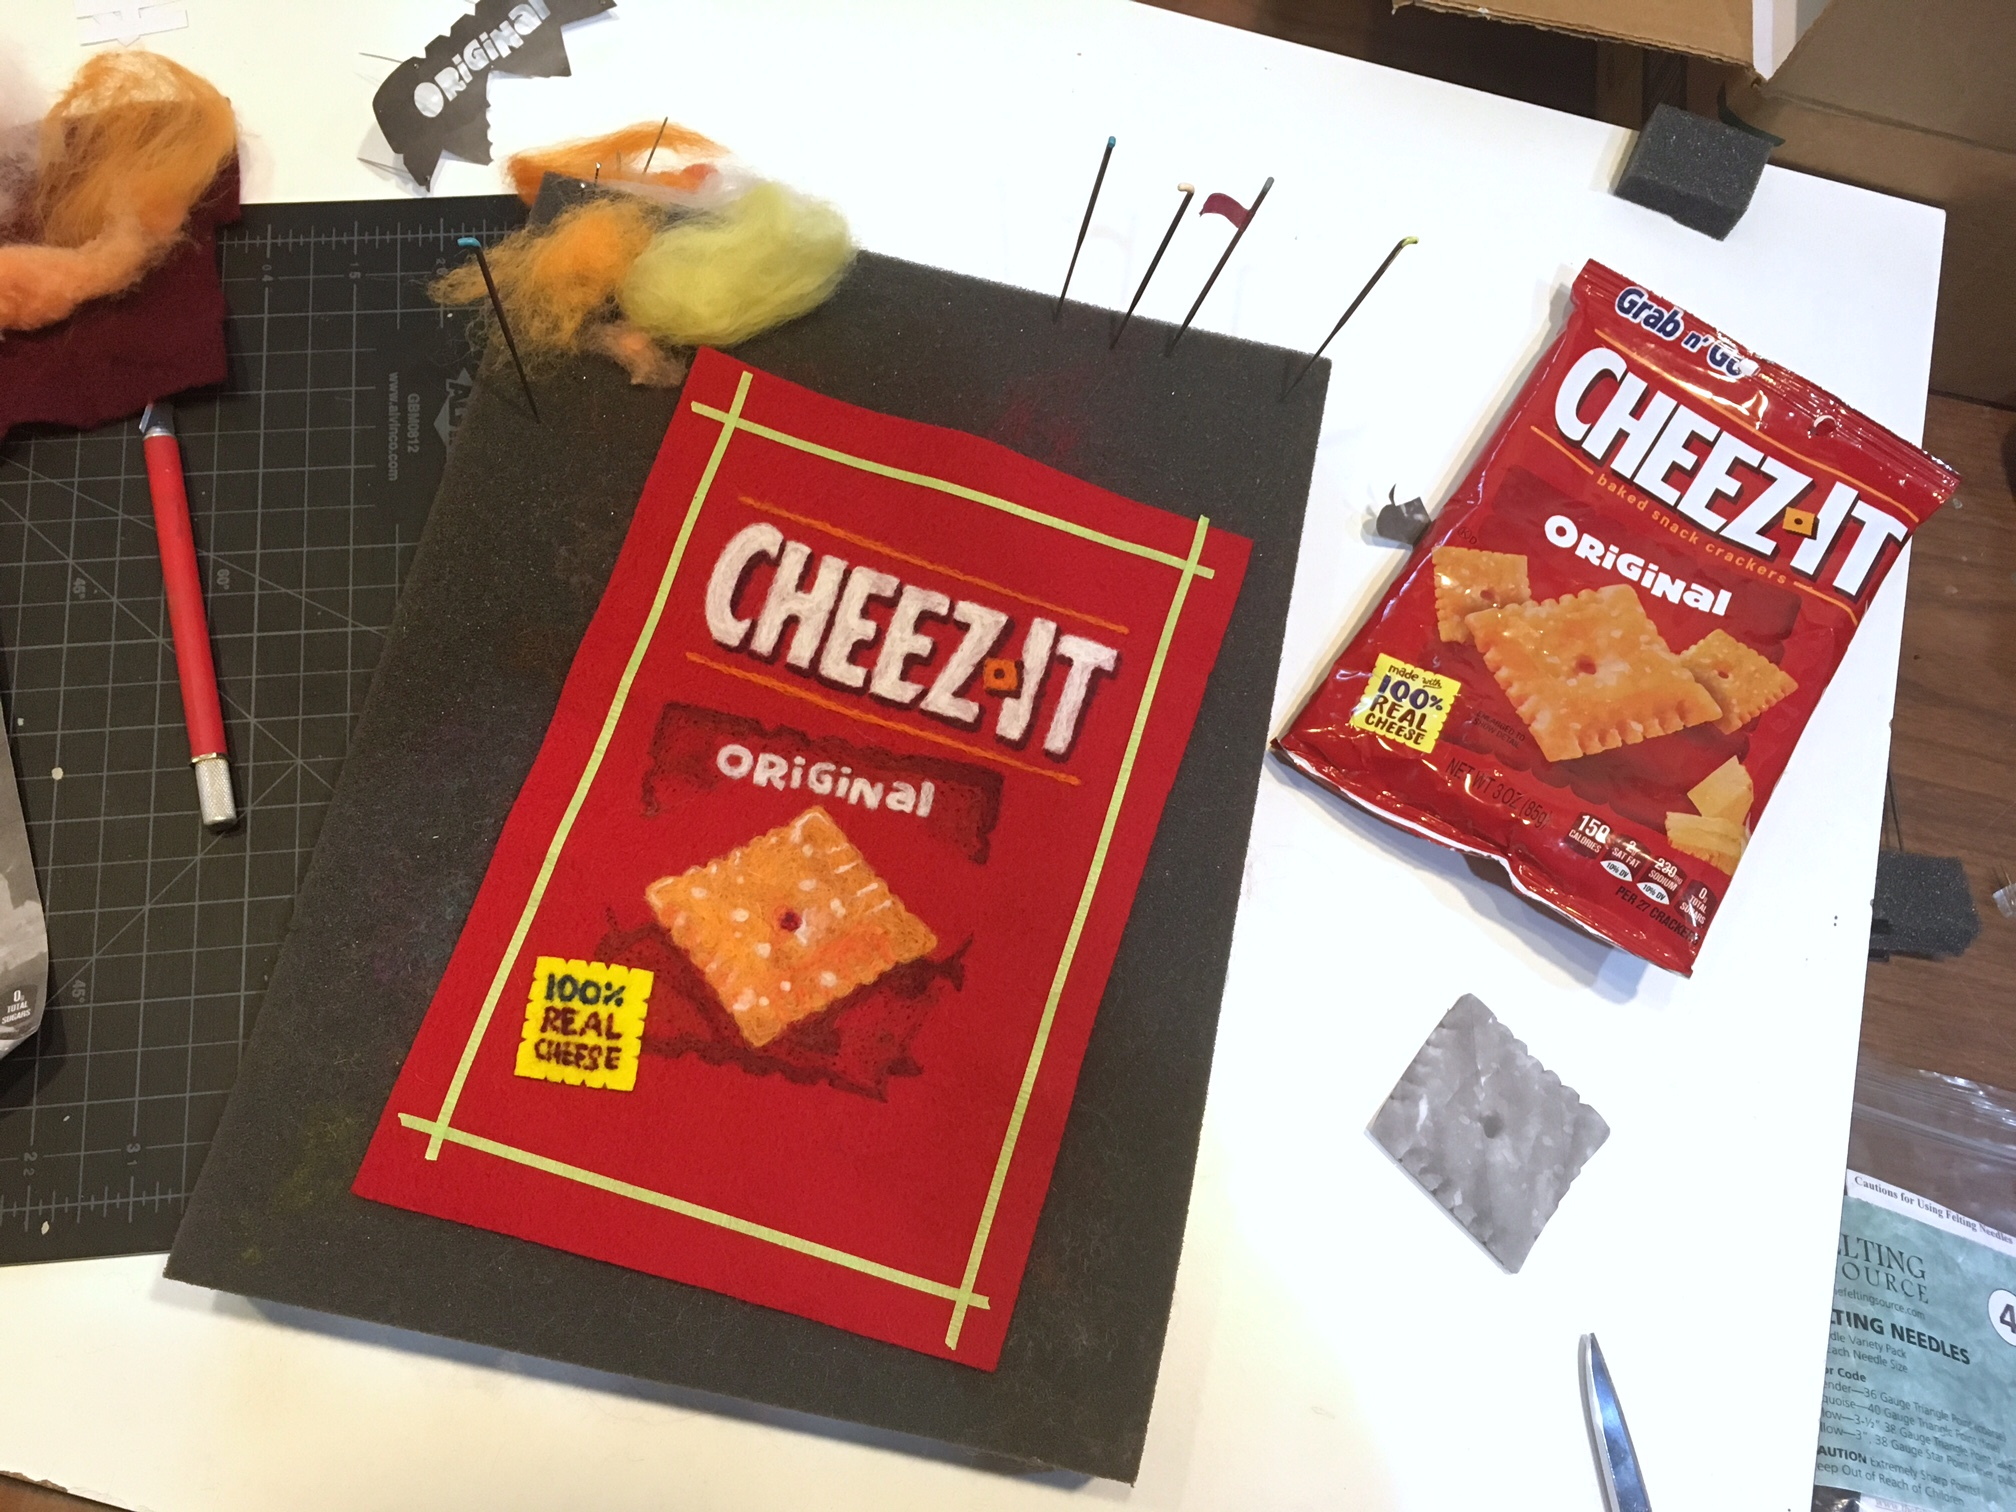 cheez-it in process.jpg